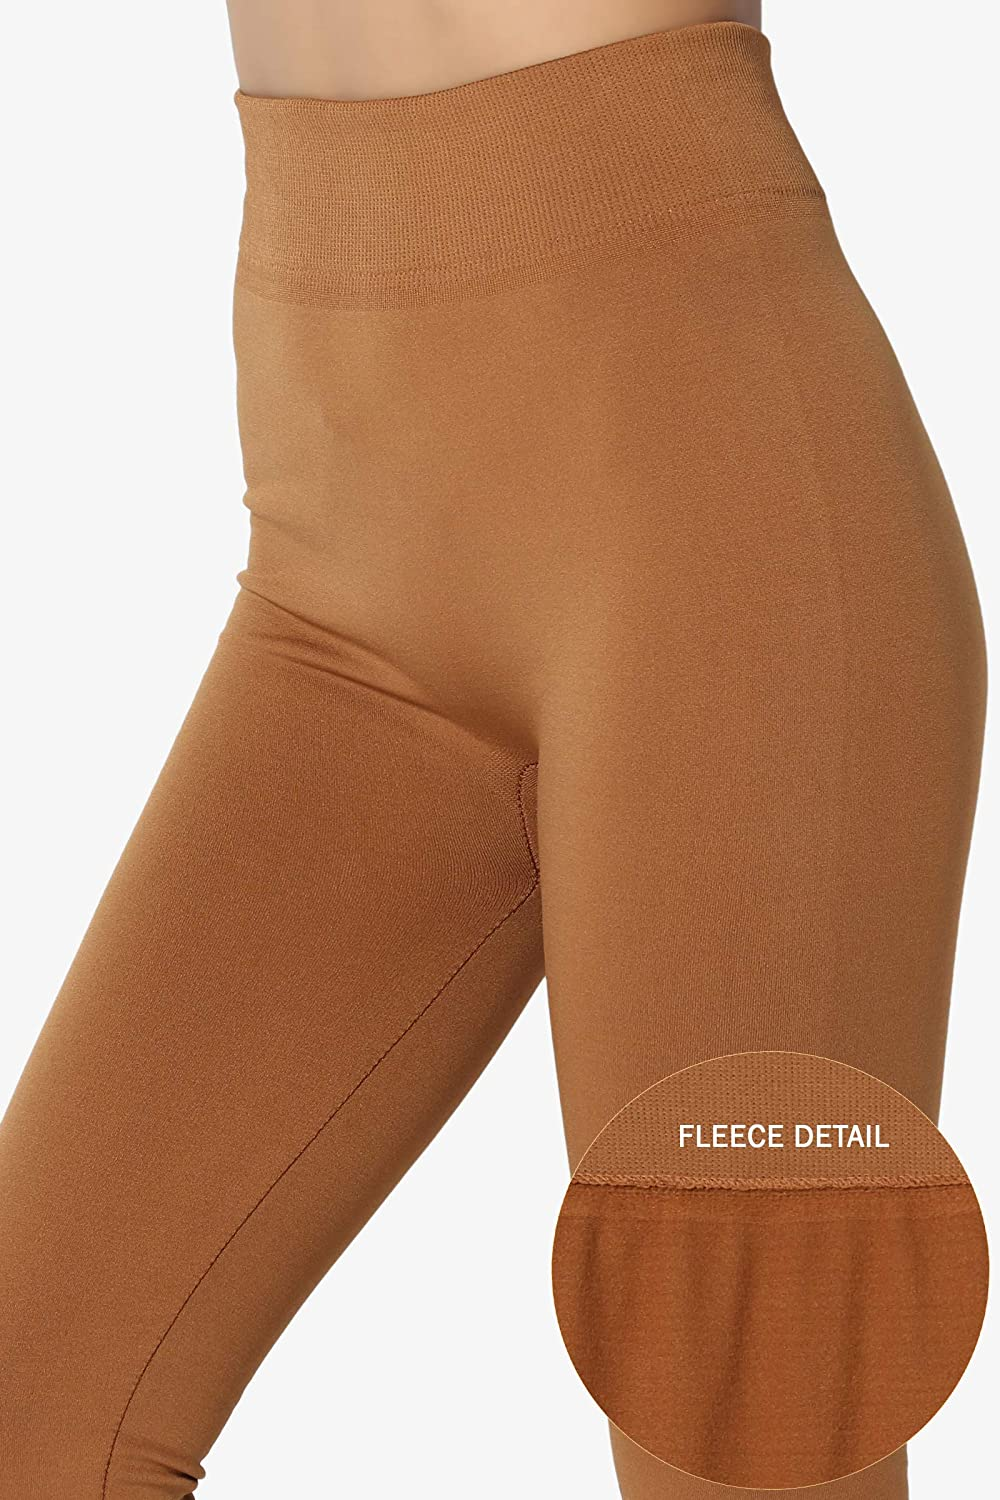 f9b6f823893e20 TheMogan S~3X Warm & Comfort Seamless High Waist Insulated Fleece Leggings  at Amazon Women's Clothing store: